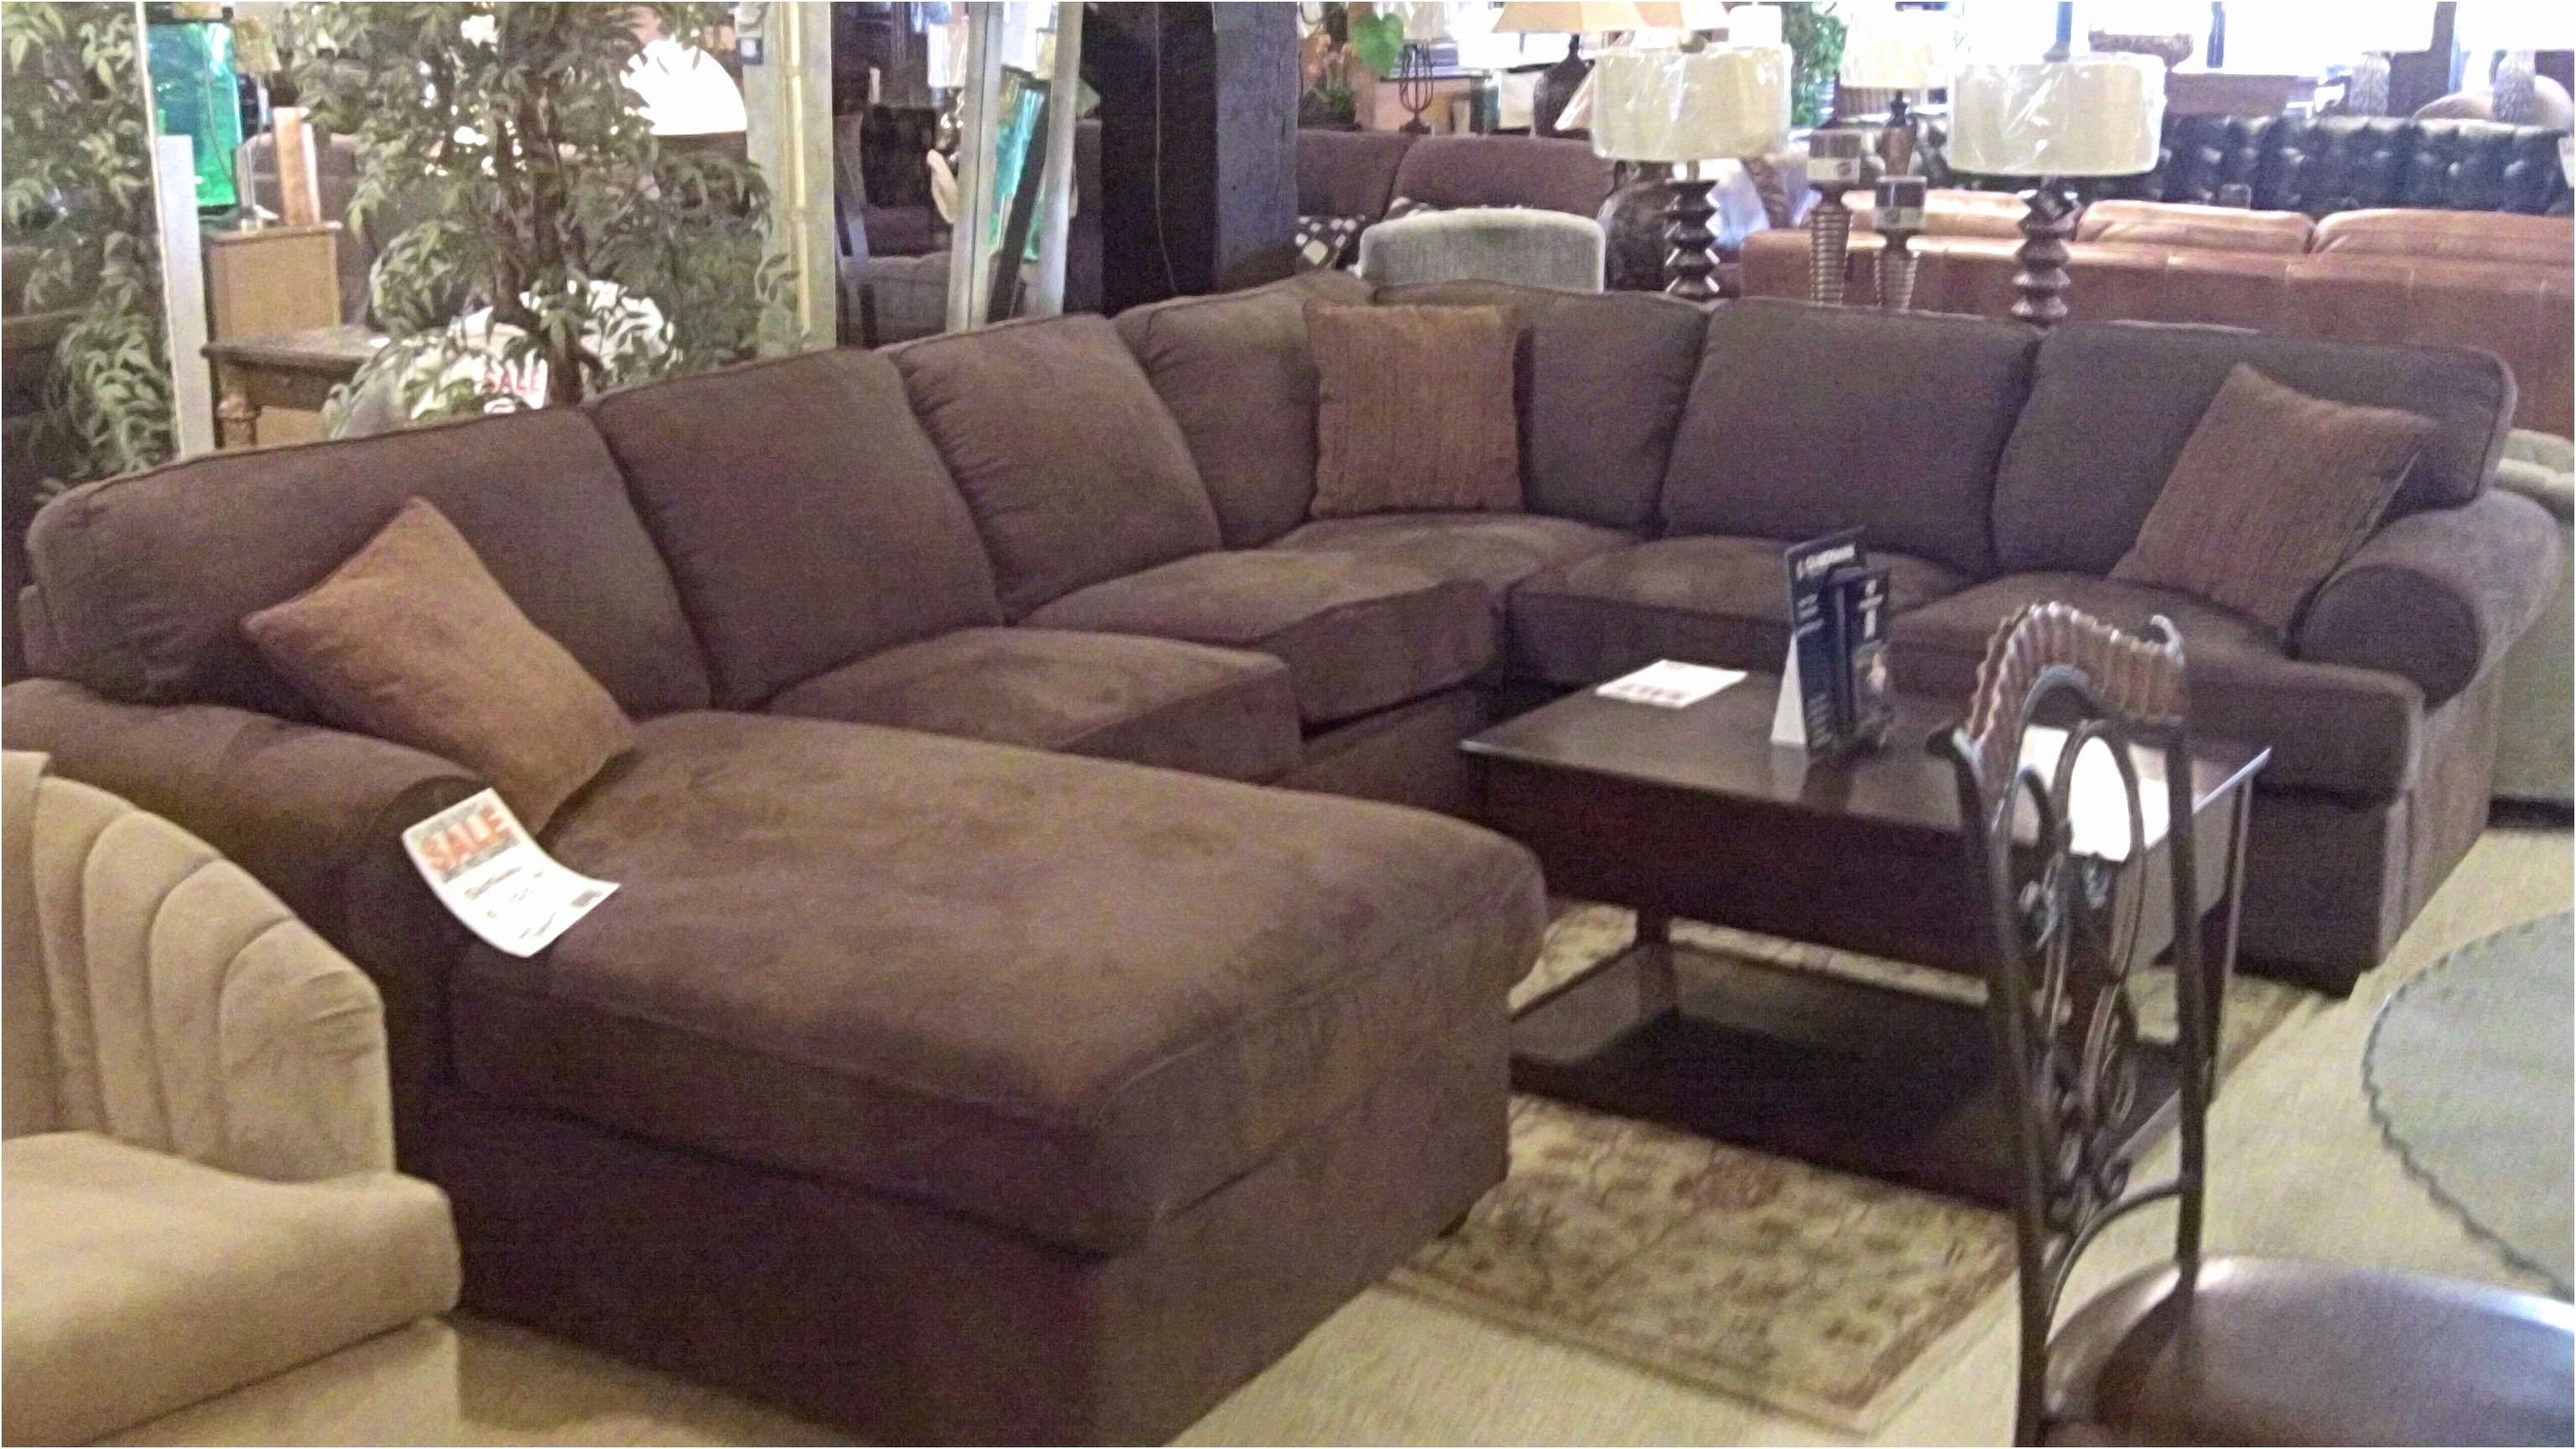 2018 Awesome Best Sectional Sofas Images – Home Design With High Quality Sectional Sofas (View 1 of 20)